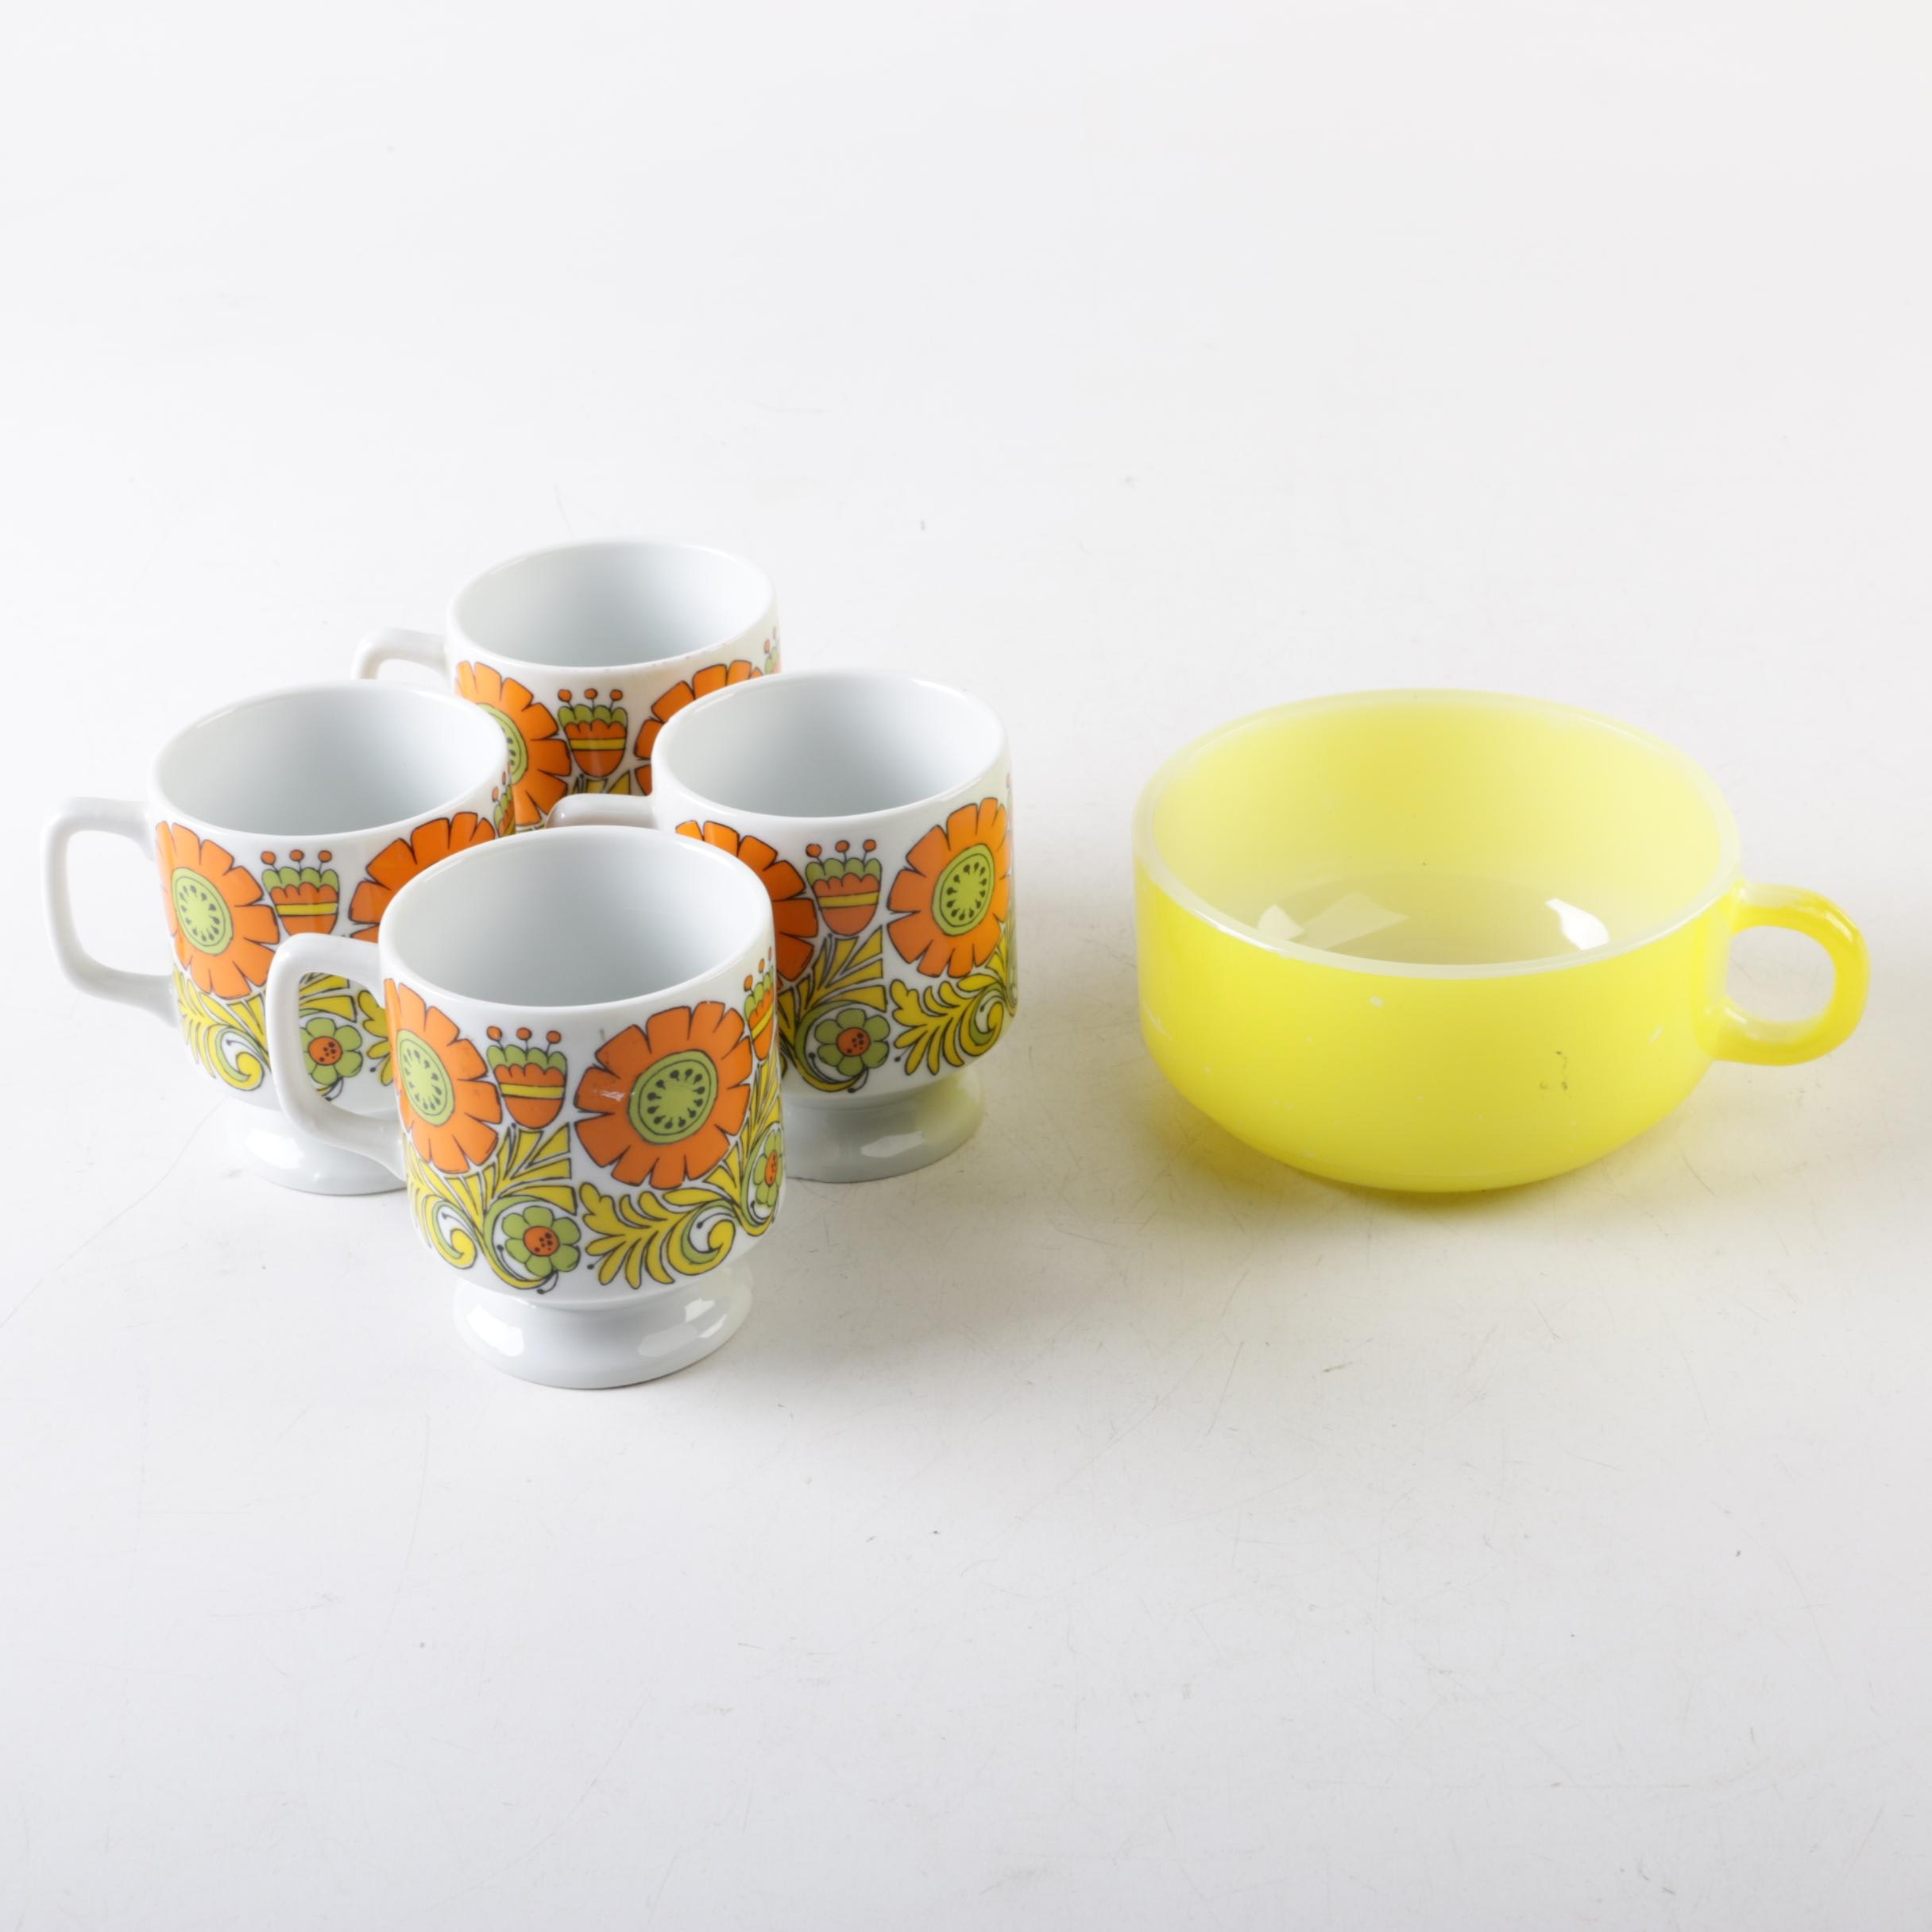 Vintage Tableware Including Floral Mugs and Anchor Hocking Fire King Yellow Bowl